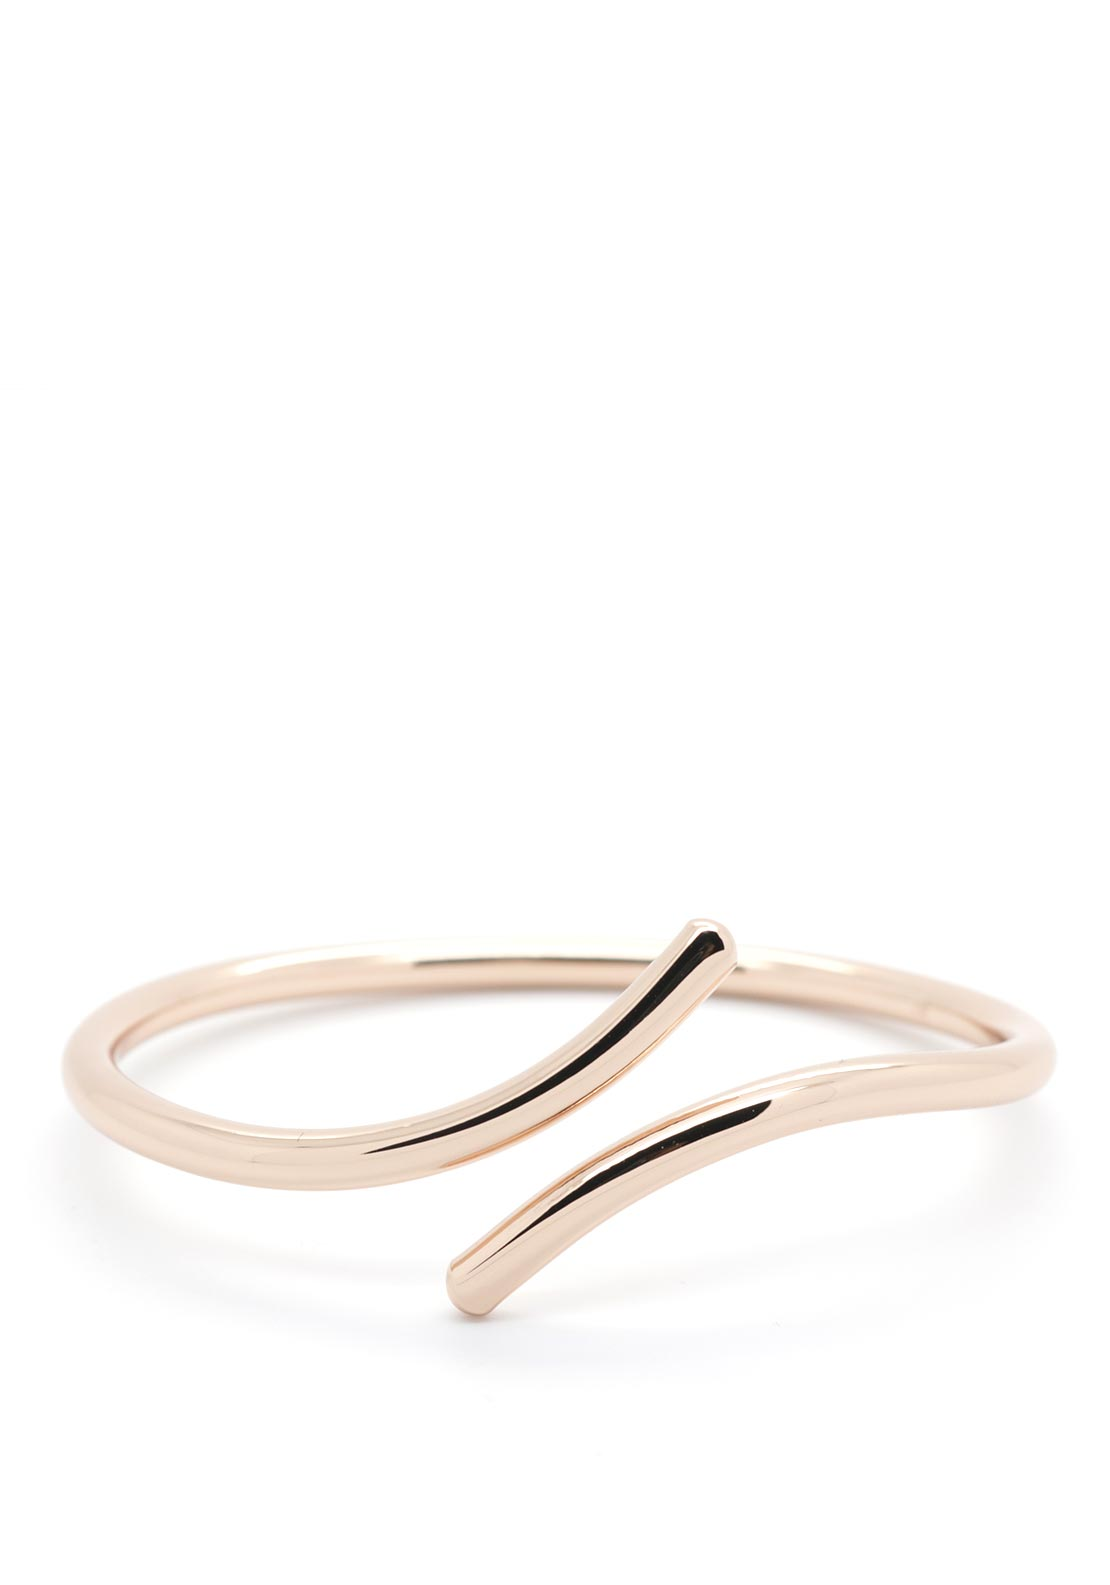 Absolute Plain Twist Bangle, Rose Gold